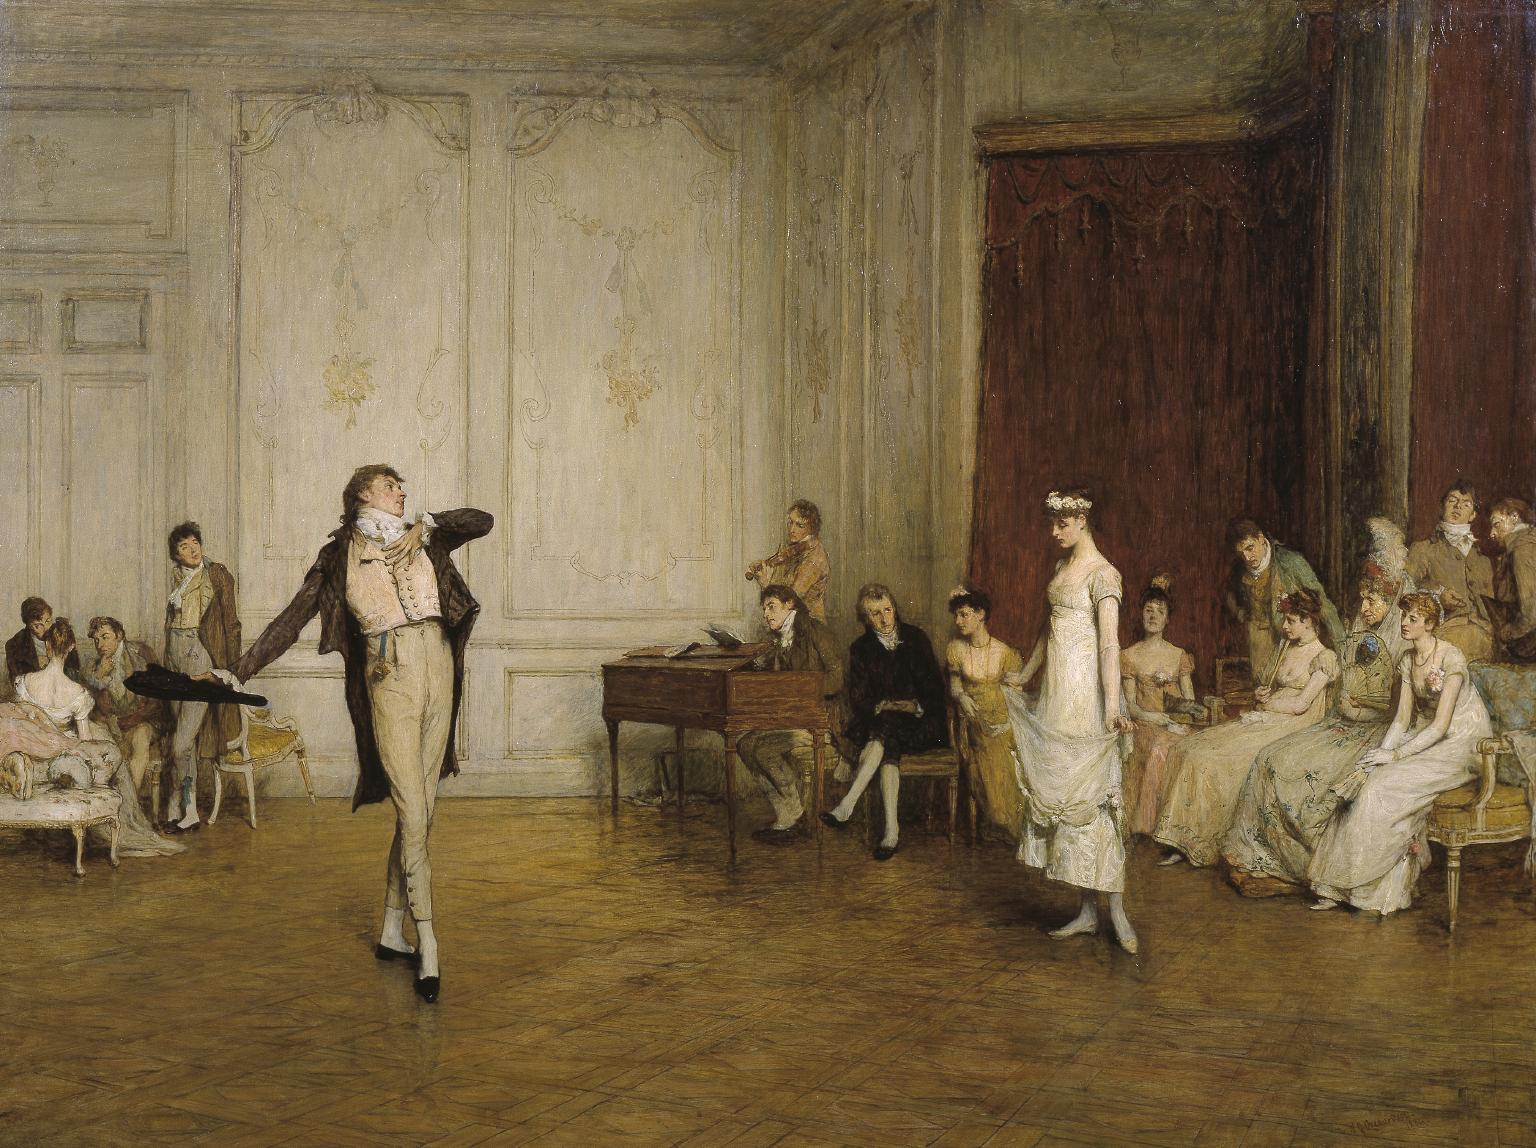 Her First Dance 1884 by Sir William Quiller Orchardson 1832-1910